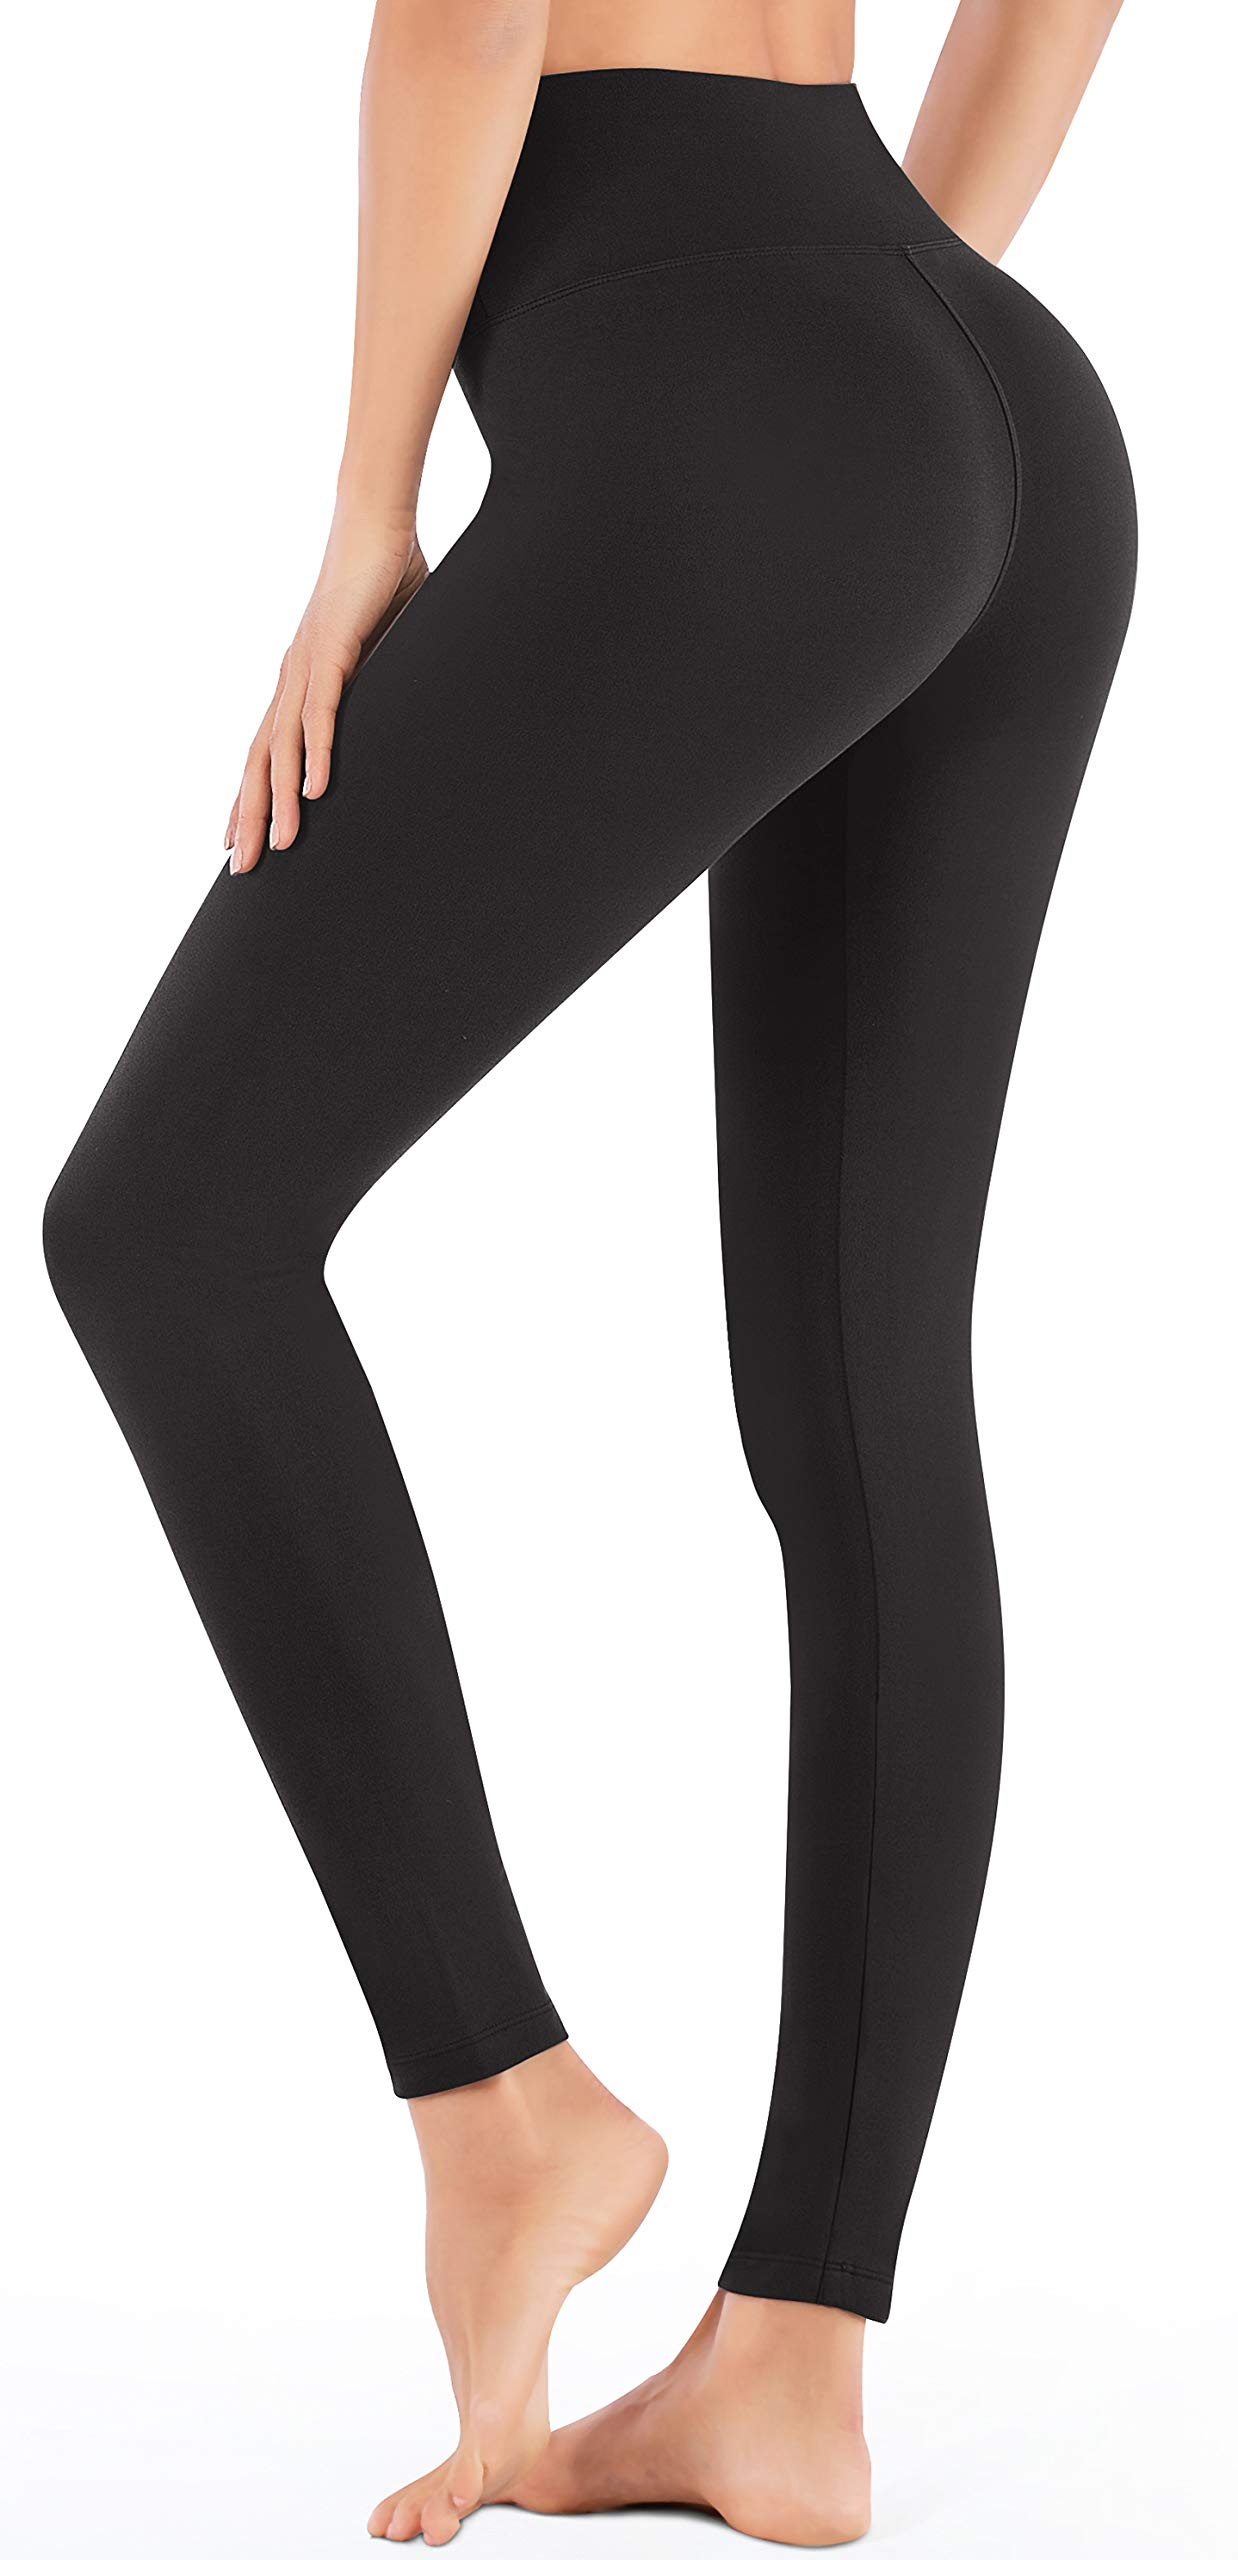 IUGA High Waisted Leggings with Inner Pocket, Non See-Through Workout Stretch Leggings for Women